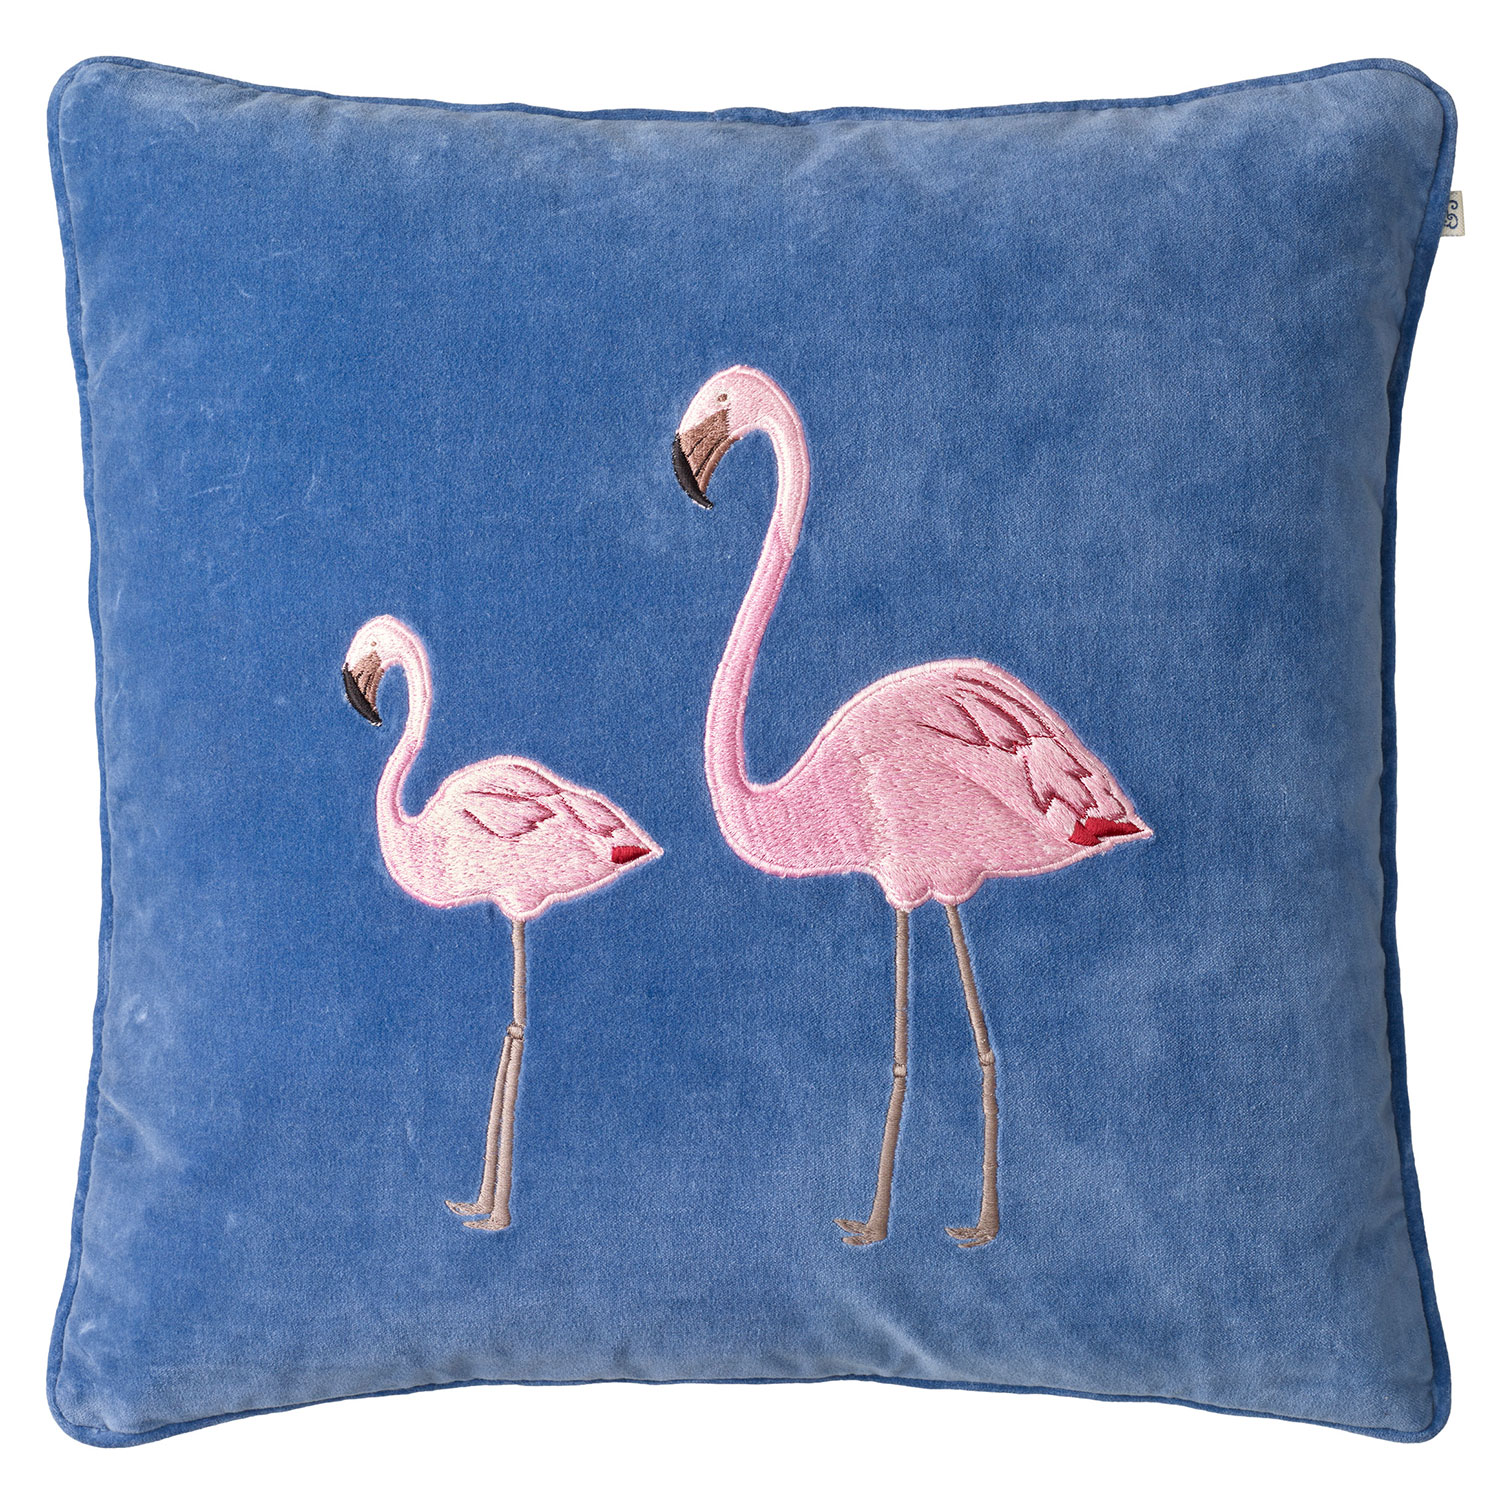 Embroidered Flamingo Kuddfodral 50x50 cm, Rivie...